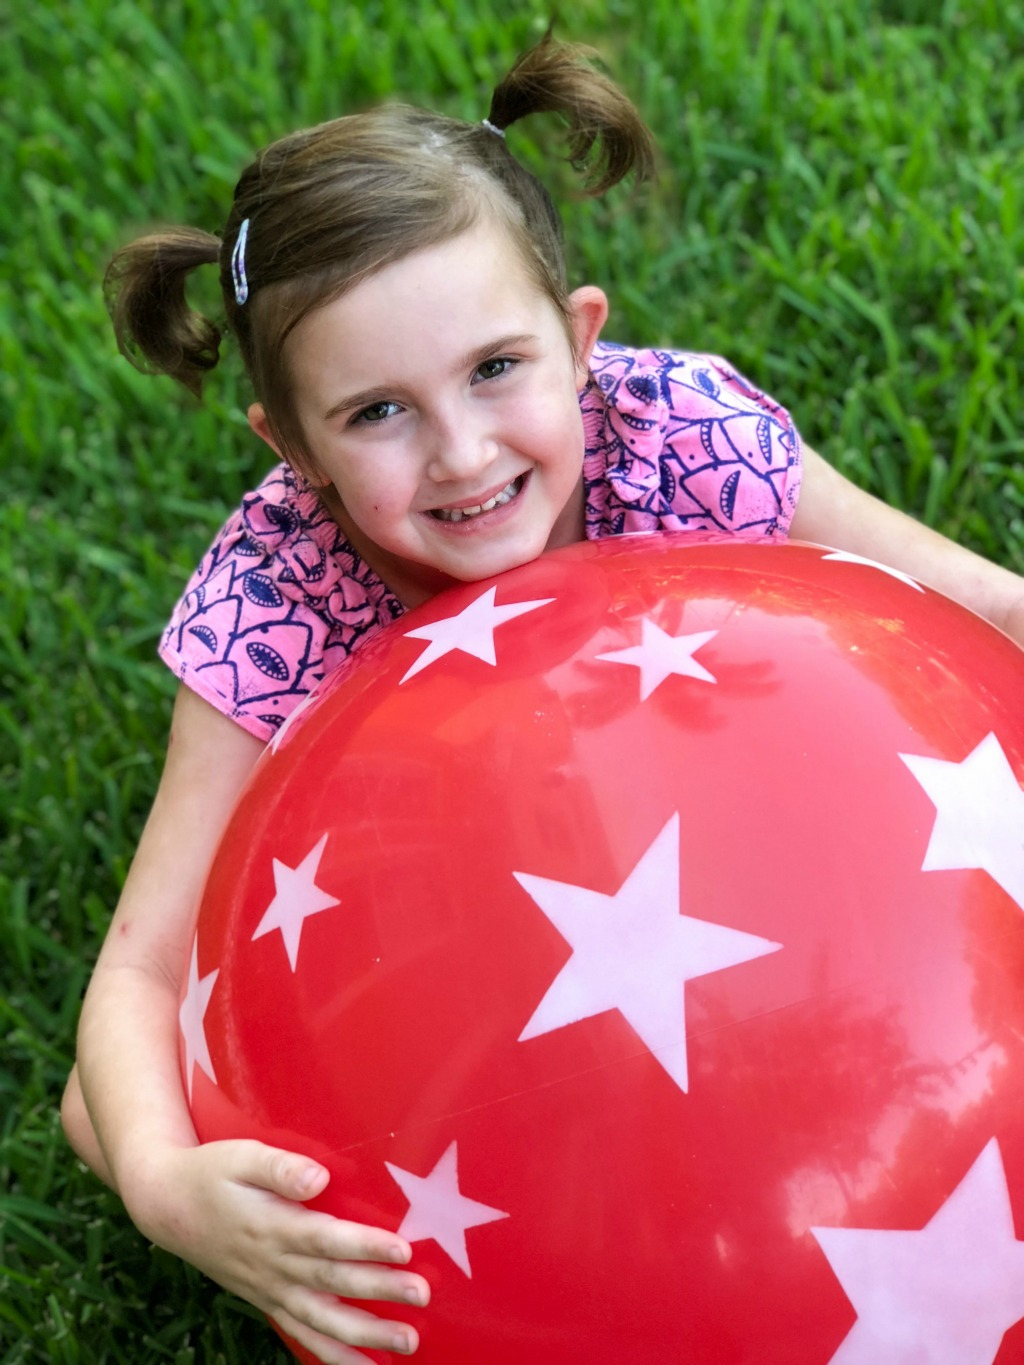 girl playing with giant bouncy ball